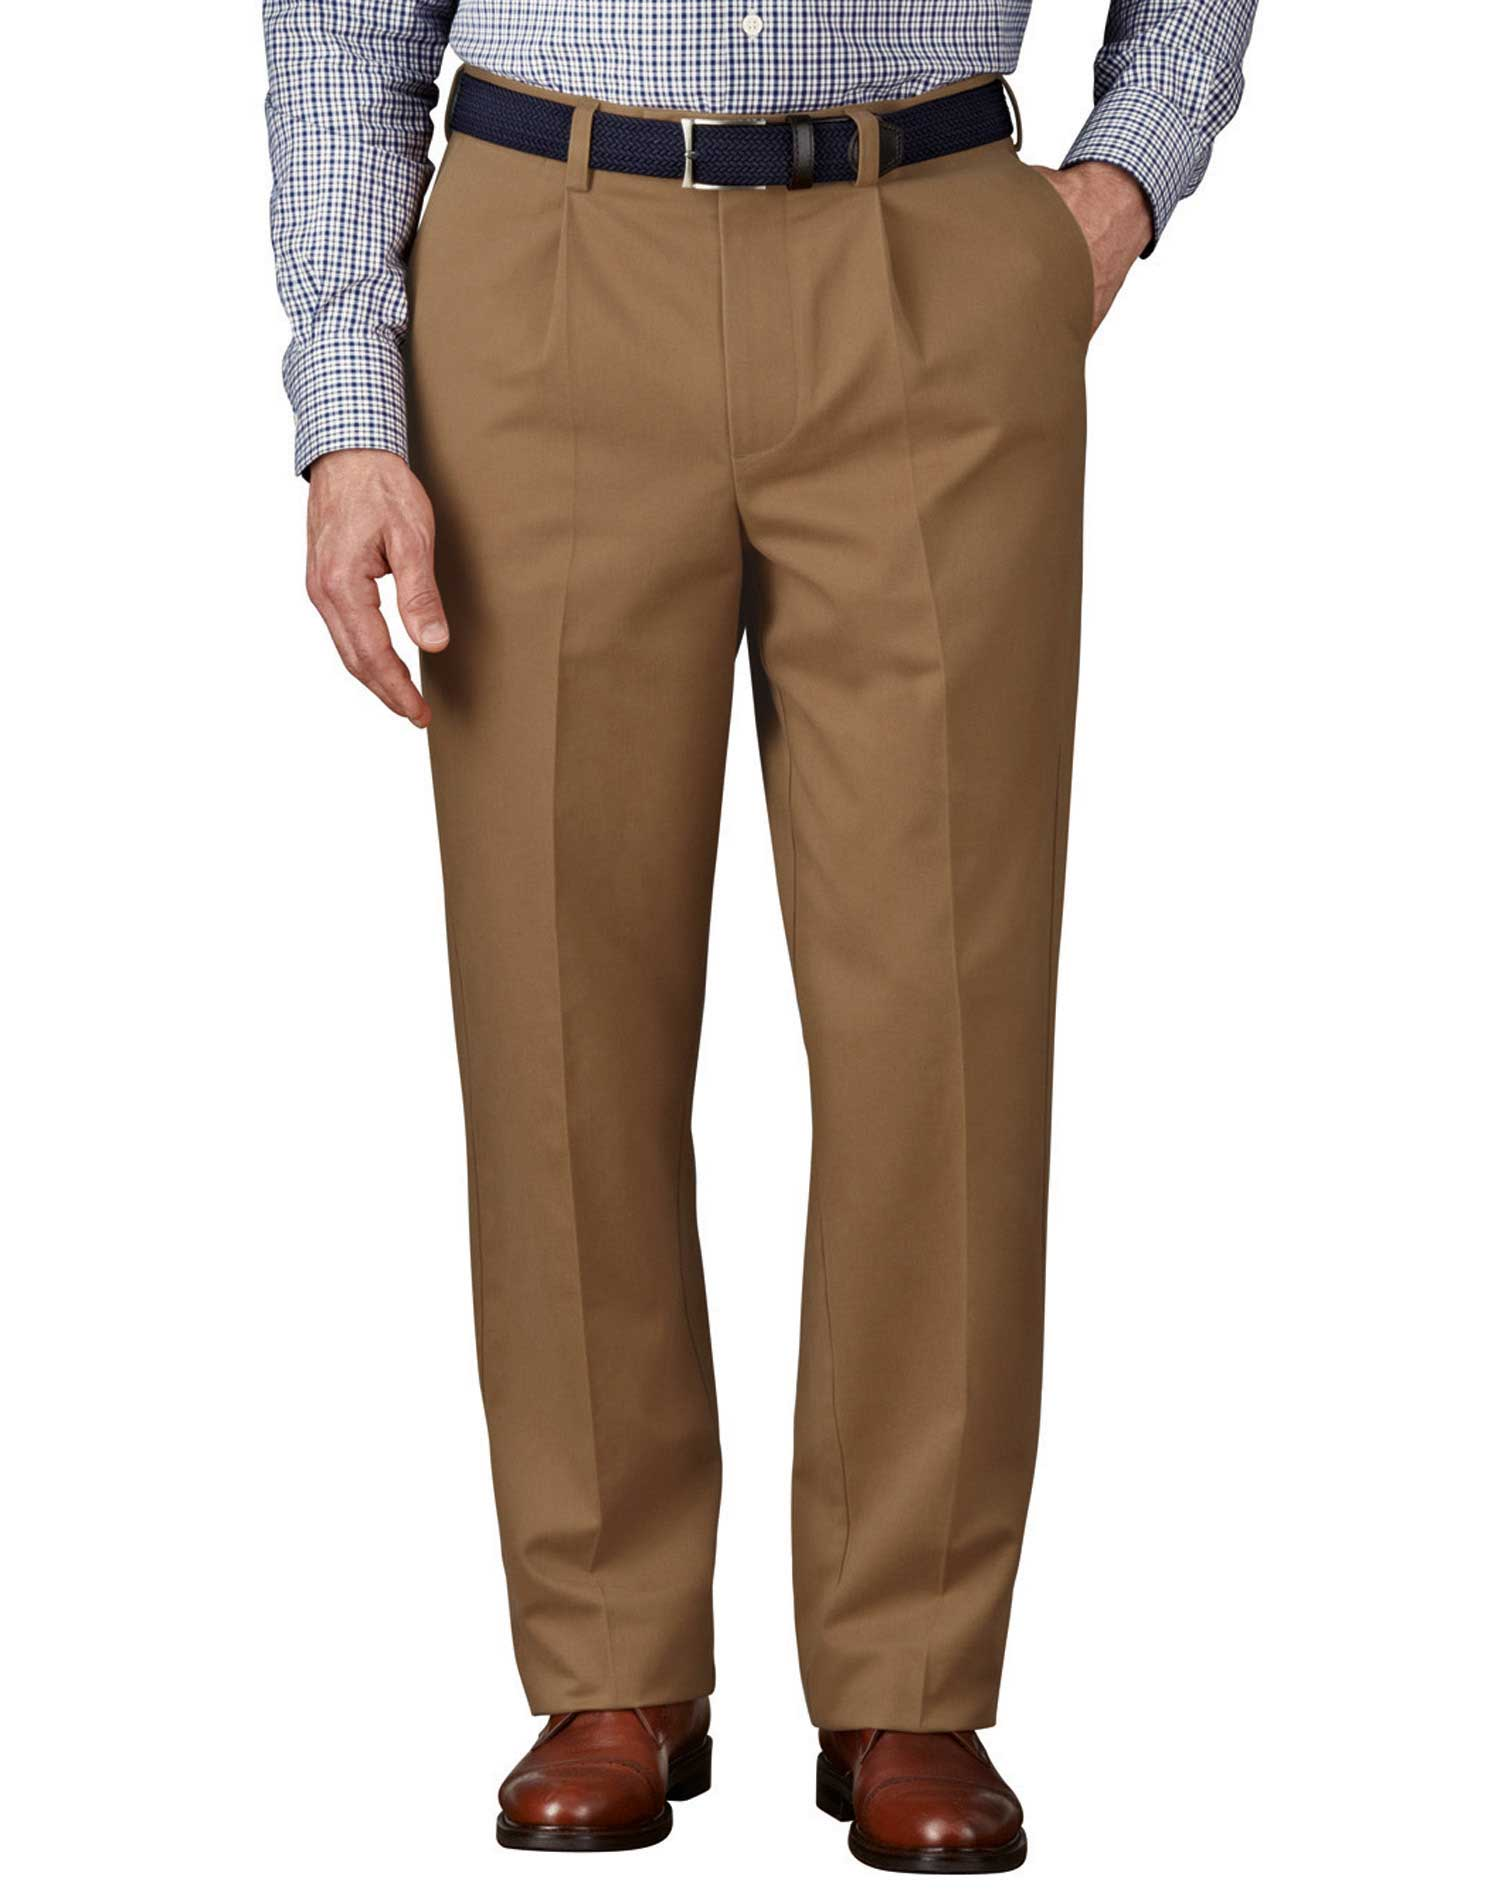 Camel Classic Fit Single Pleat Non-Iron Cotton Chino Trousers Size W38 L38 by Charles Tyrwhitt